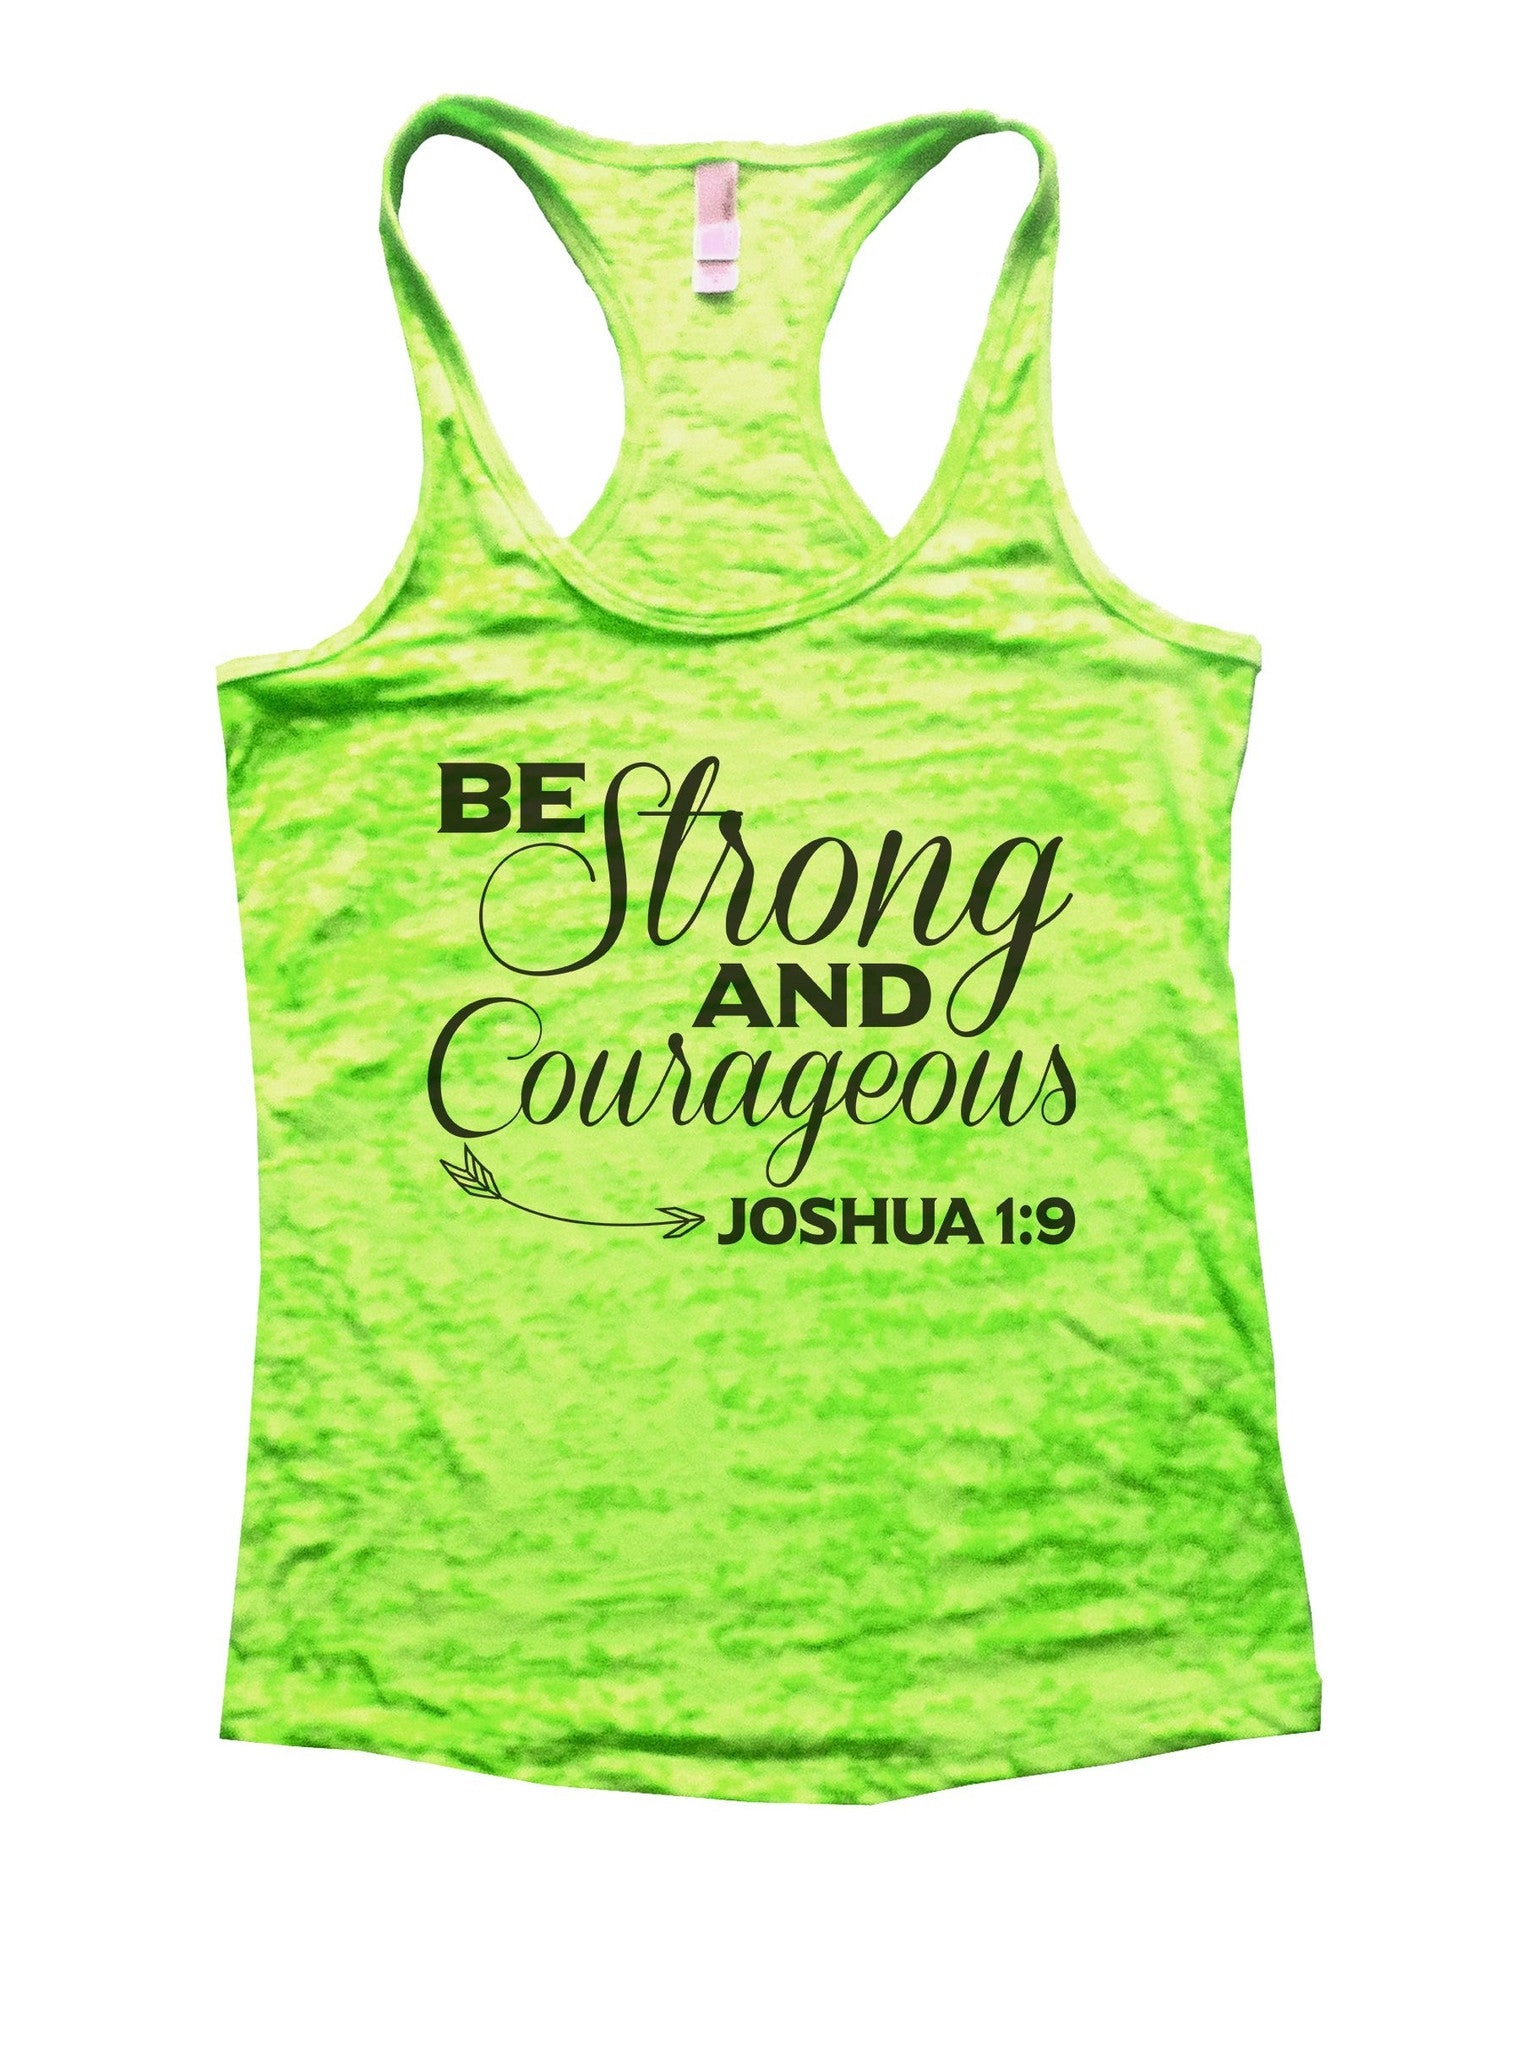 Be Strong And Courageous Joshua 1:9 Burnout Tank Top By BurnoutTankTops.com - 948 - Funny Shirts Tank Tops Burnouts and Triblends  - 2